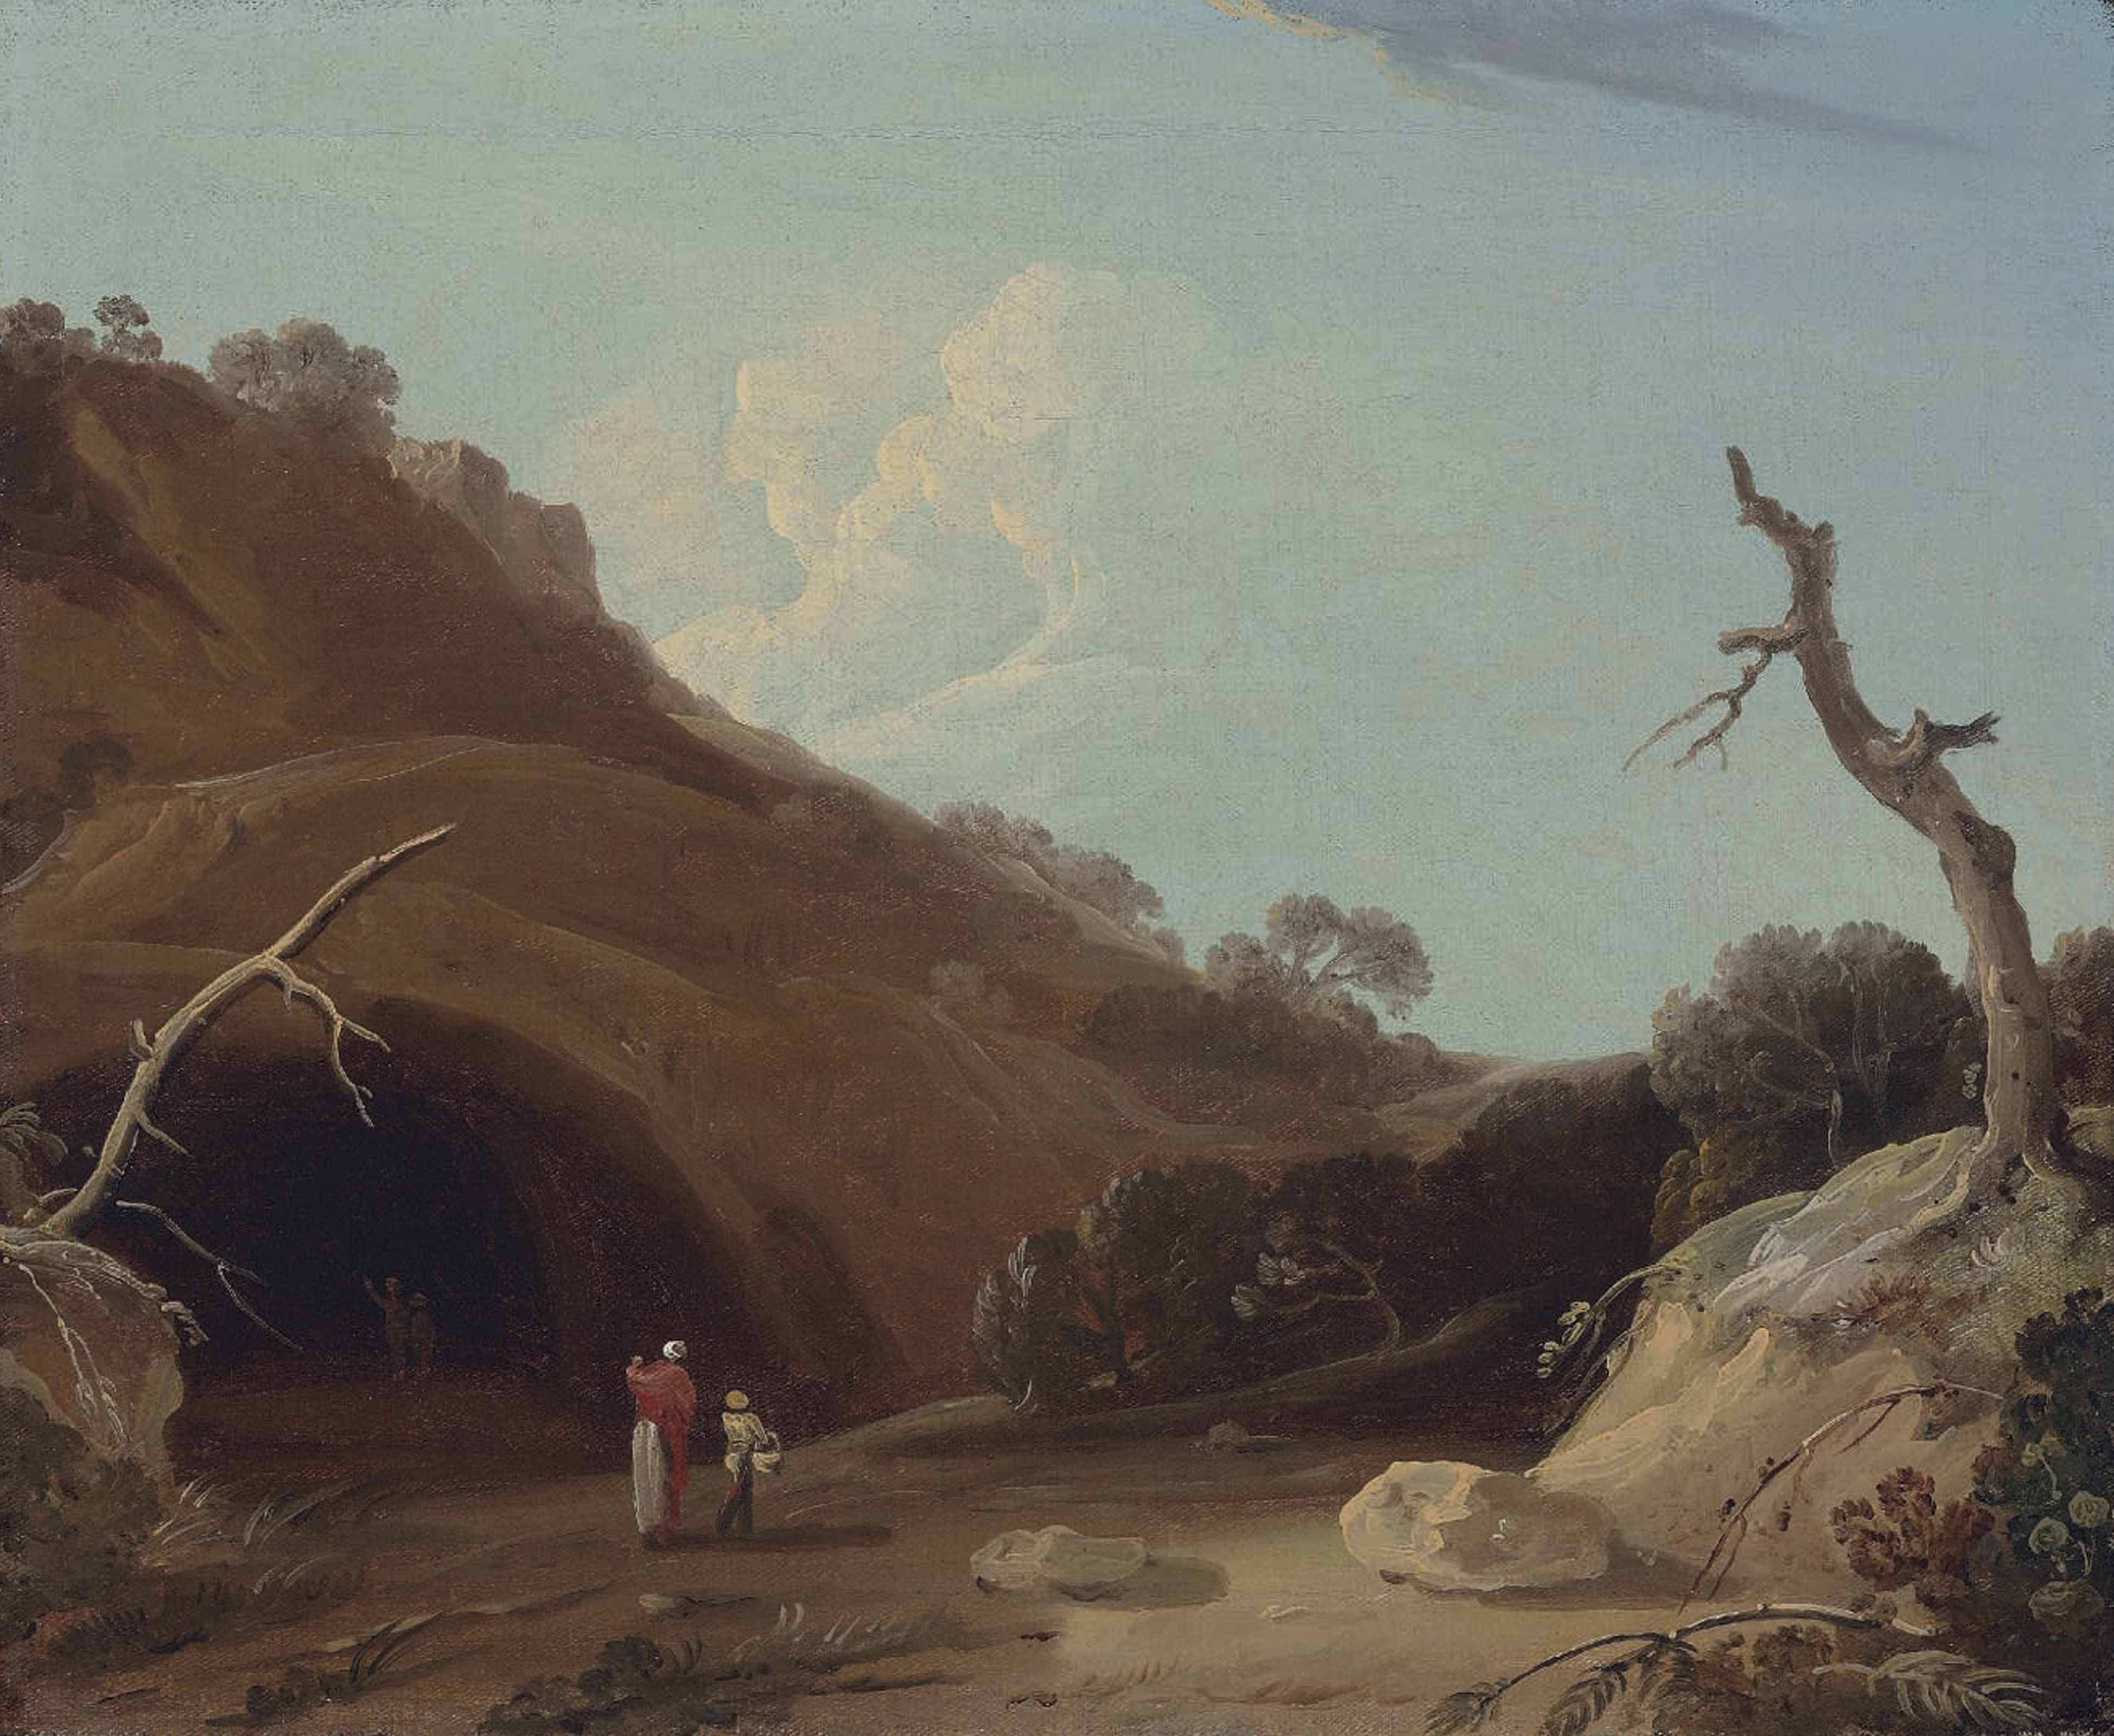 A hilly Indian landscape with figures passing by a cave